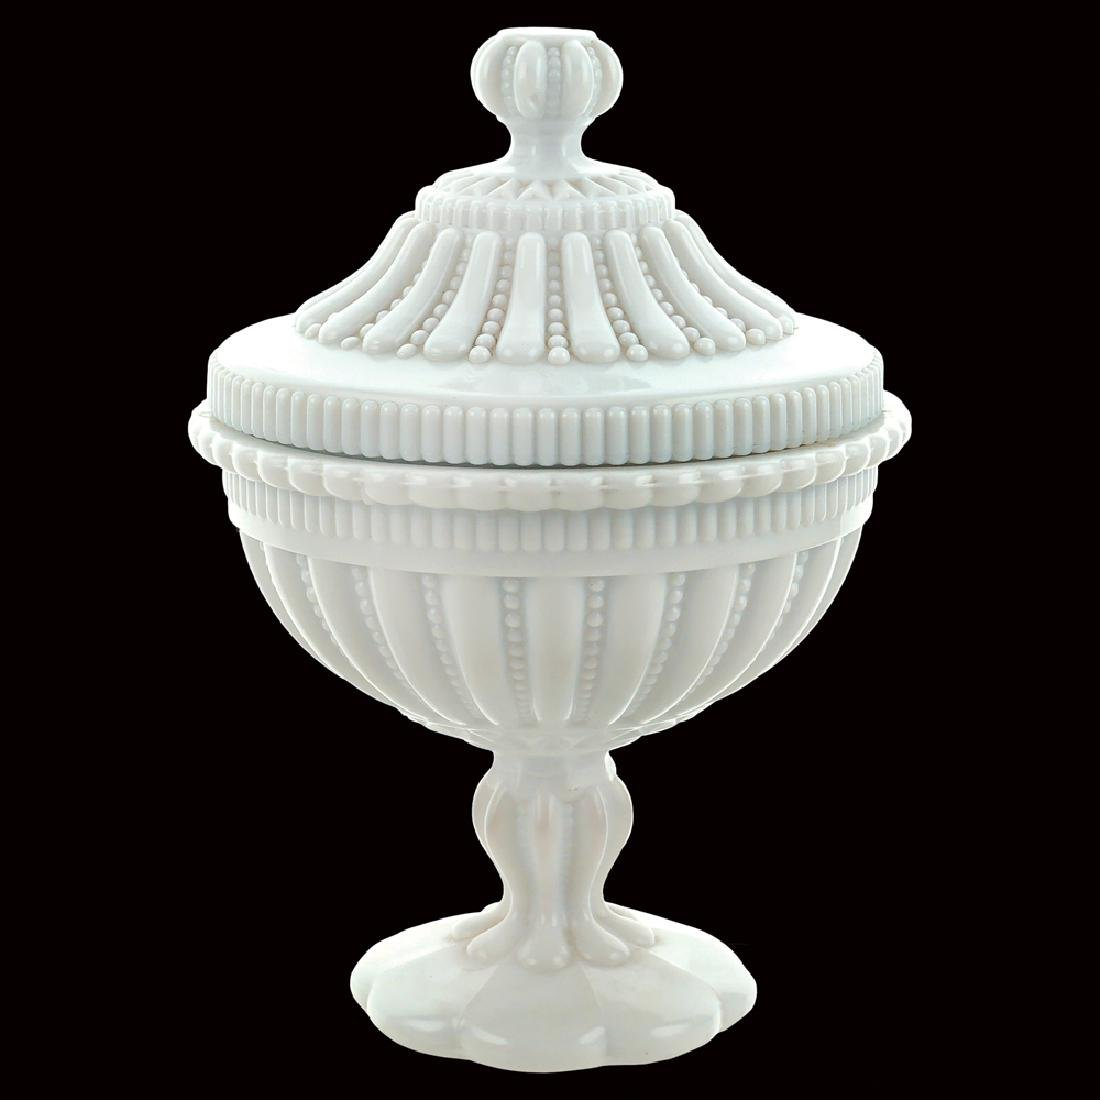 Cup with lid Italy 20th century 23x16 cm.